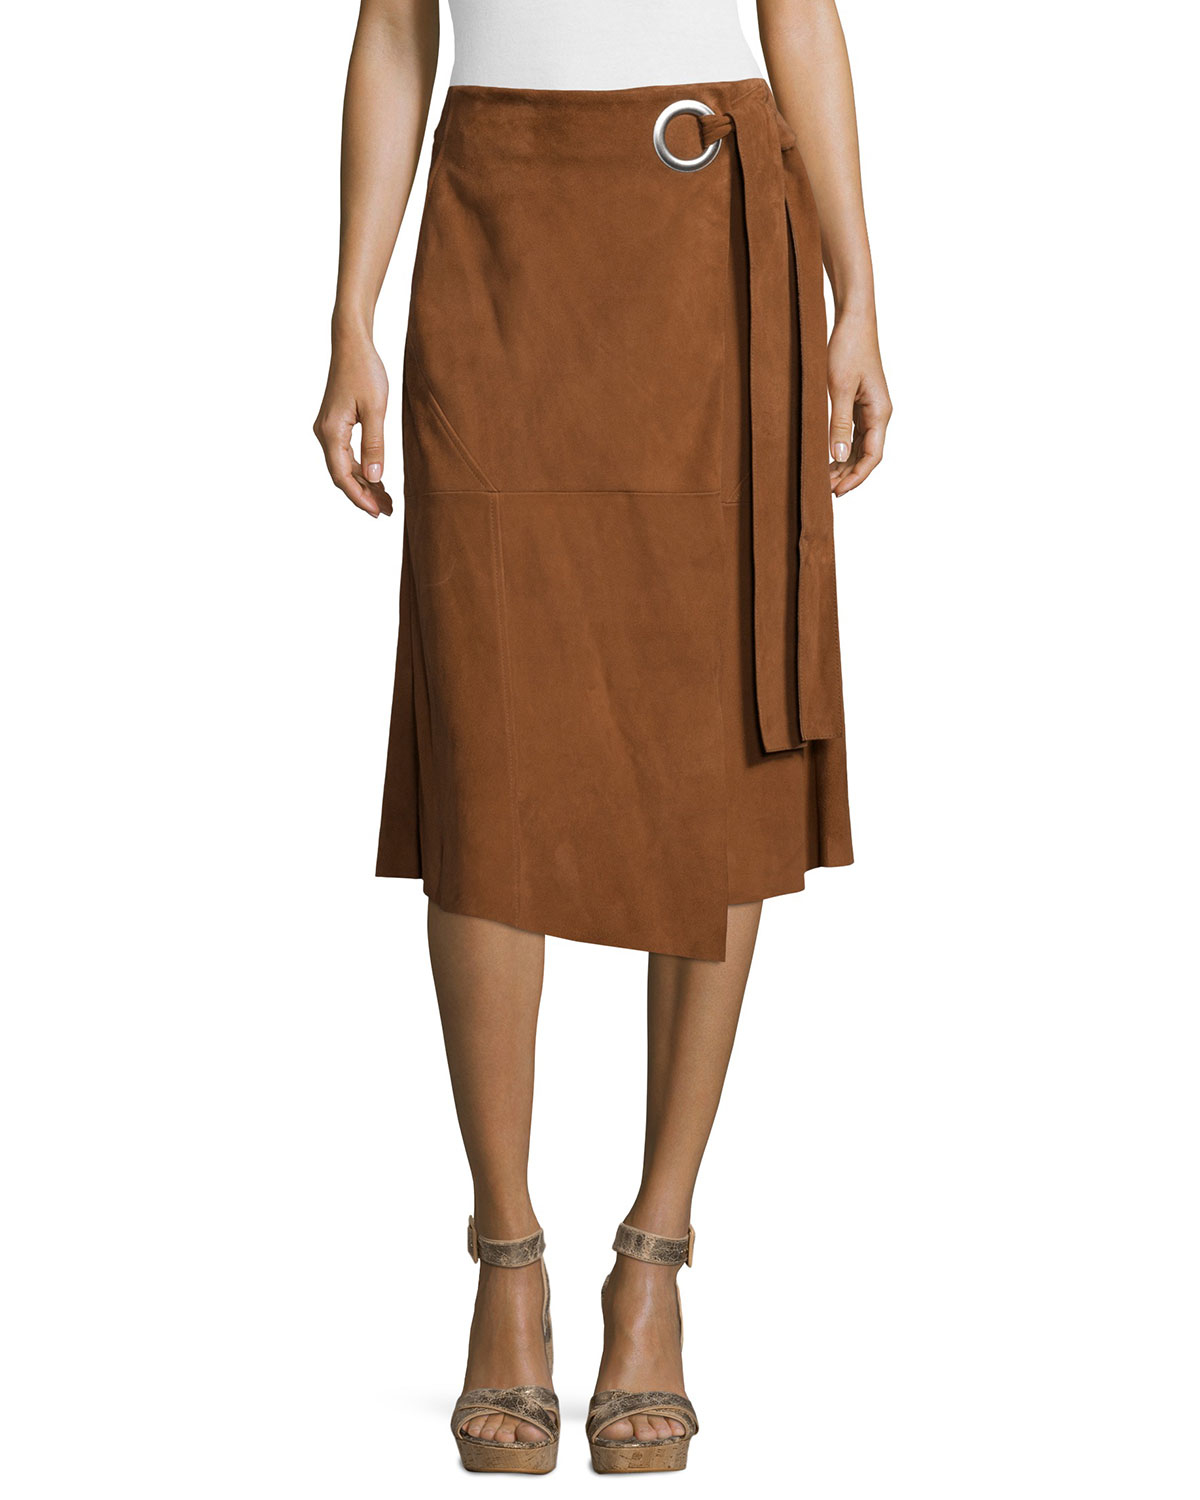 Free shipping BOTH ways on Skirts, Brown, Women, from our vast selection of styles. Fast delivery, and 24/7/ real-person service with a smile. Click or call